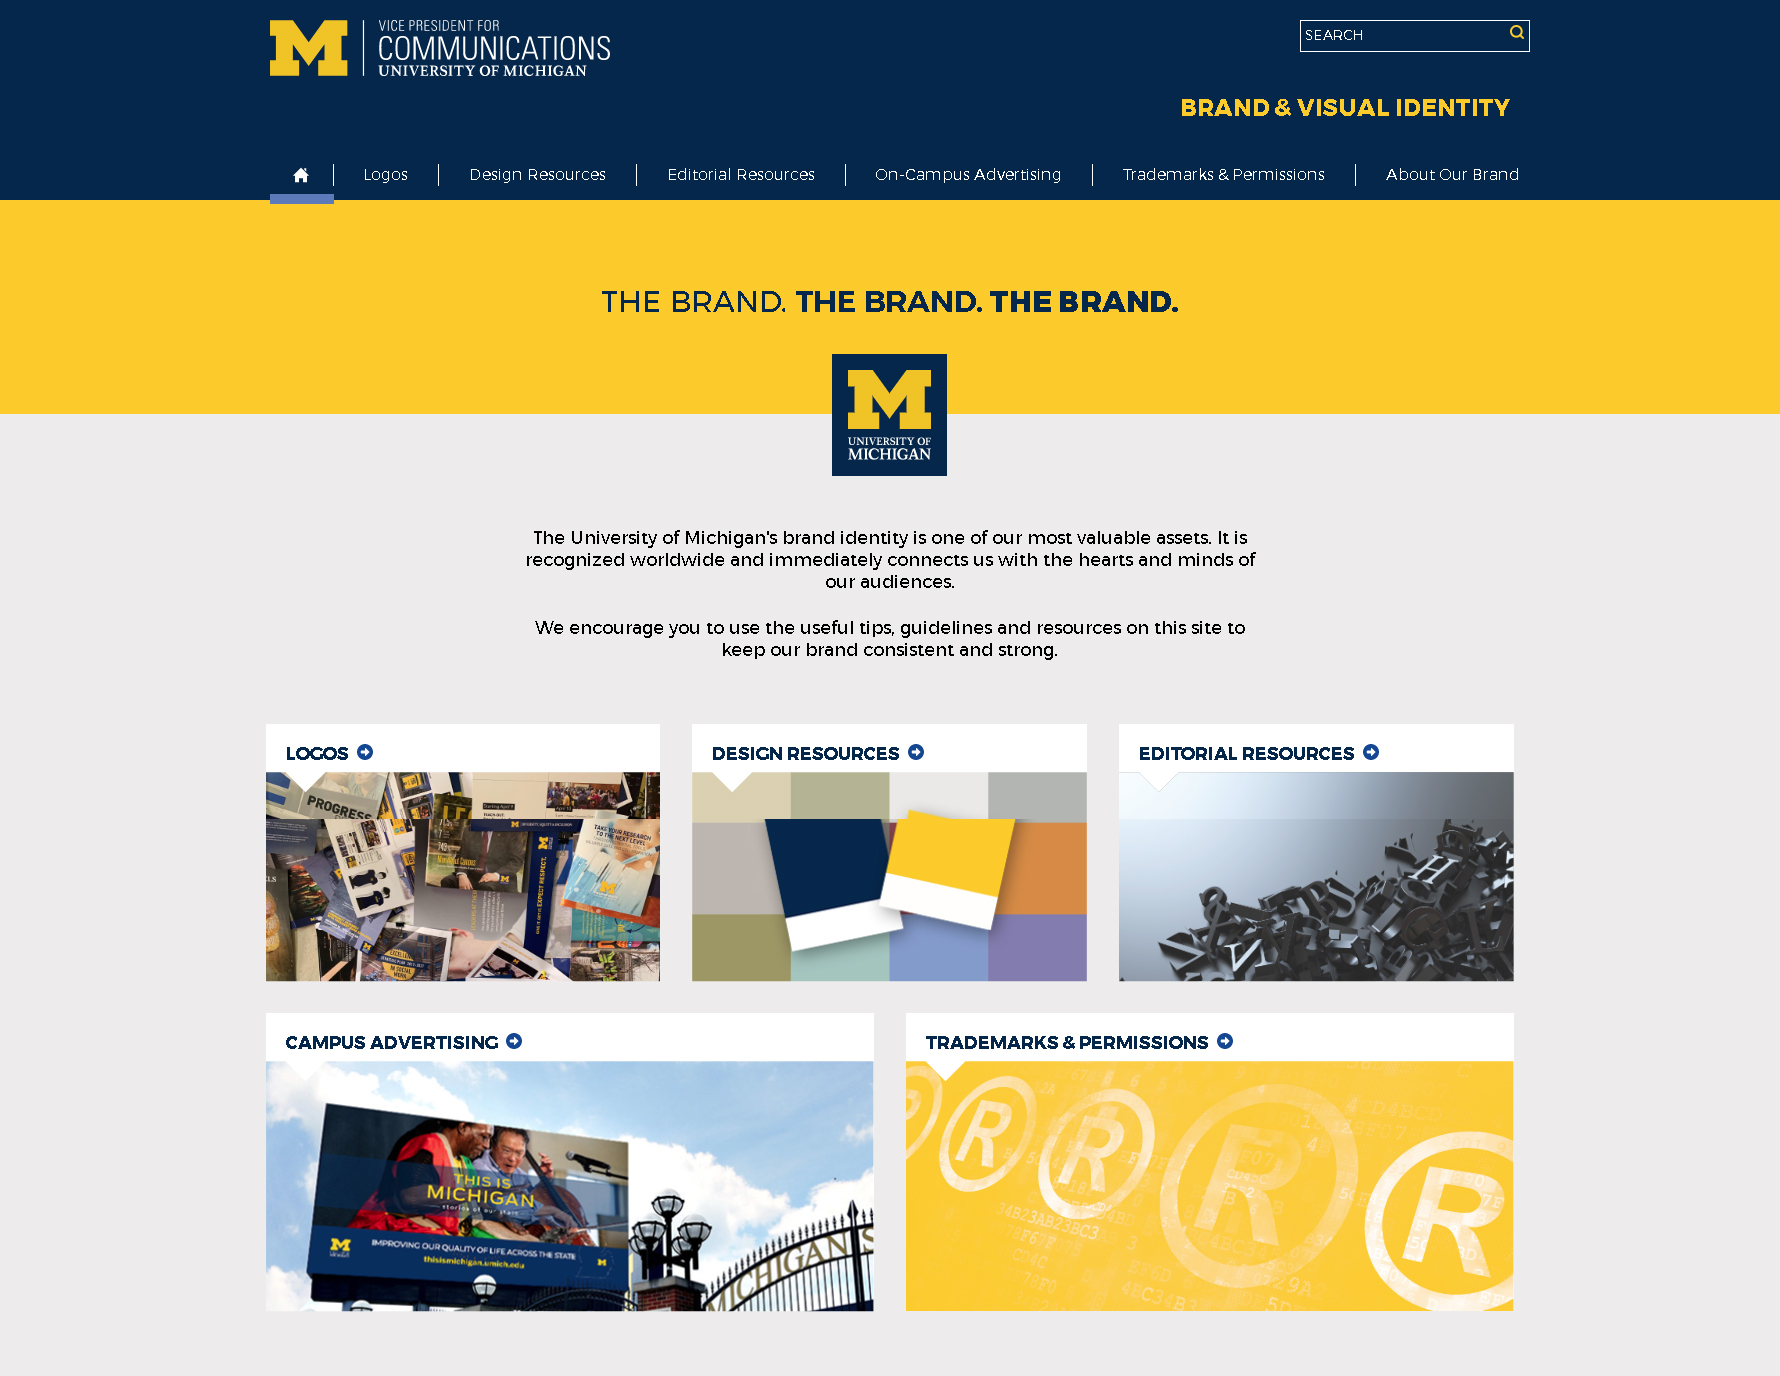 higher education brand identity best practices